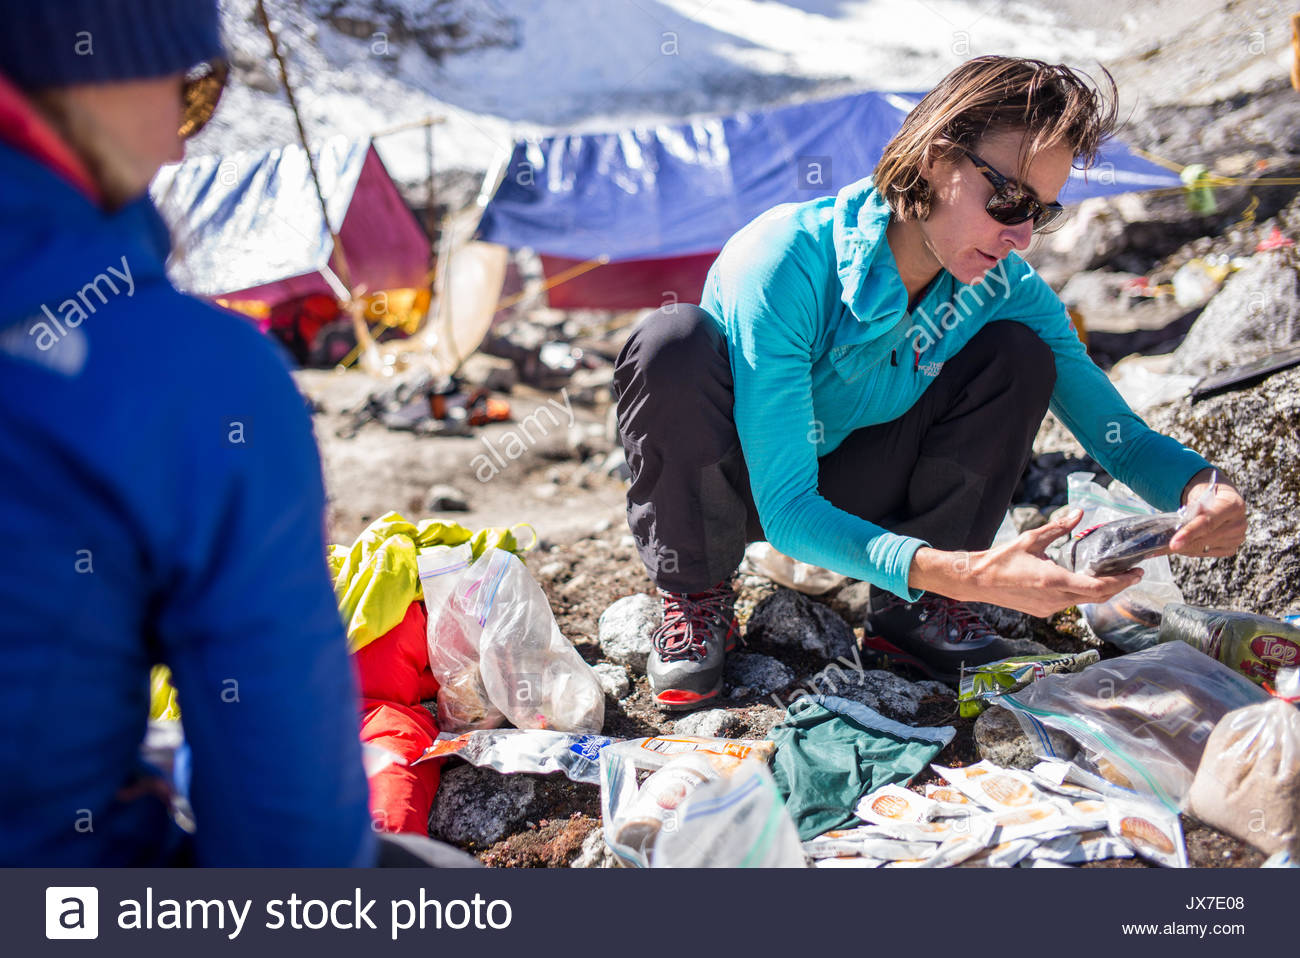 Expedition members check gear. - Stock Image